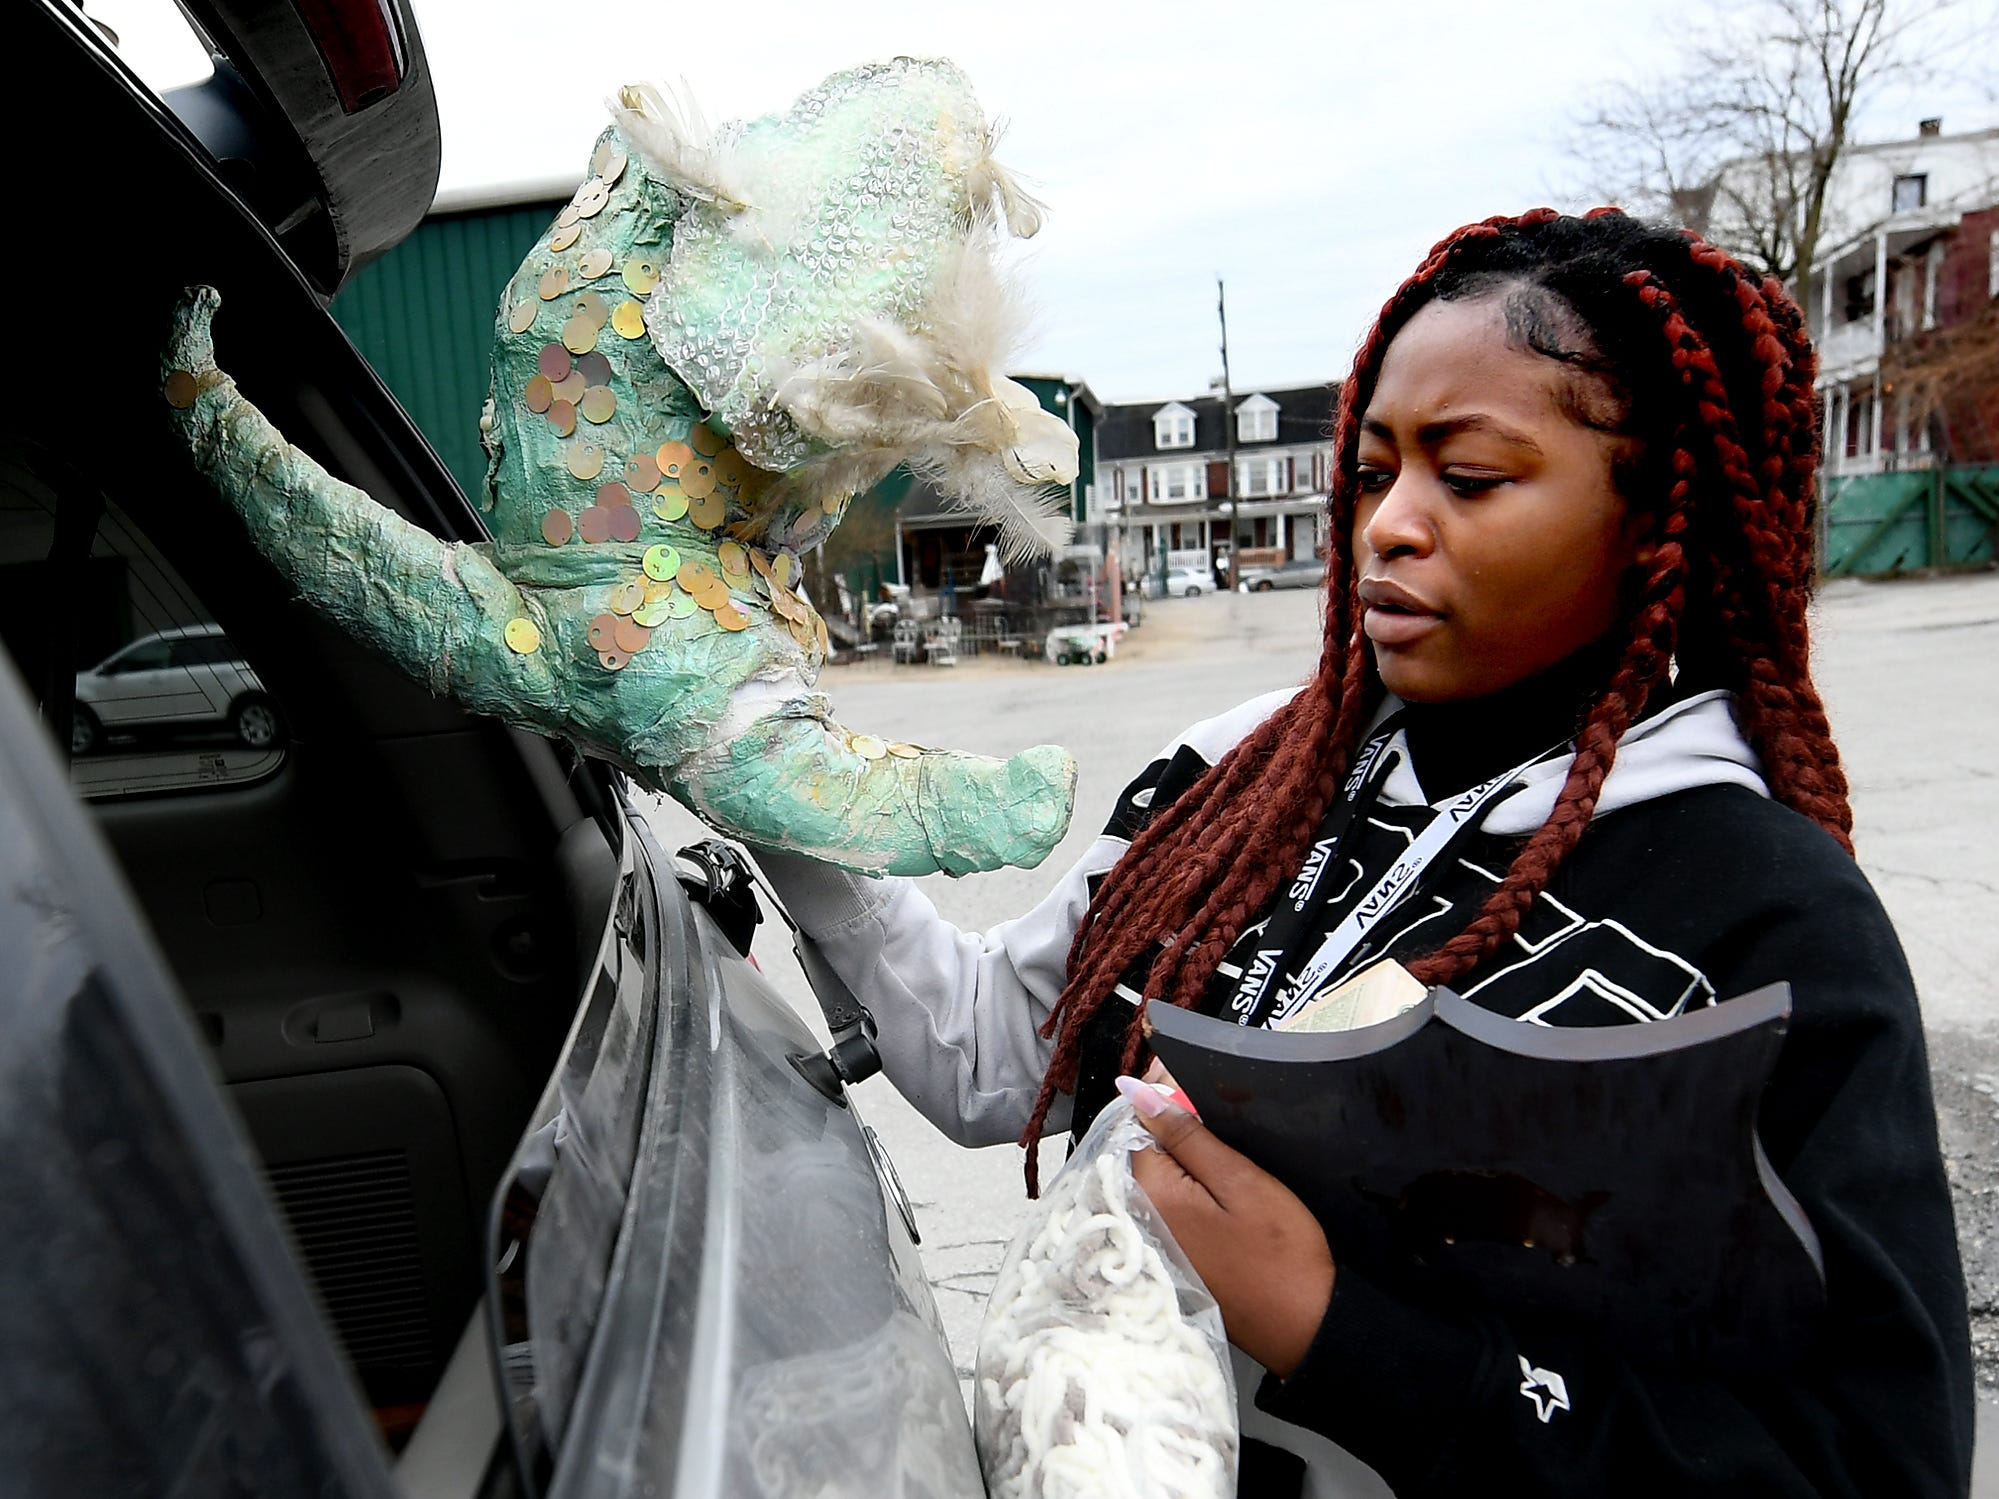 Red Lion High School senior Ranellesa Zizi loads items for her entry in the York County Solid Waste Authority Recycled Art Contest during Picker Day at the architectural salvage warehouse Refindings in York City Saturday, Feb. 23, 2019. The waste authority is sponsoring the fifth annual contest for York County high school students to promote recycling and celebrate Earth Day. Students create sculptures by mid-April from the materials donated by Refindings and the contest exhibit will be on display in the Marketview Arts Gallery, 37 W. Philadelphia St., beginning Sunday, April 14. Contest winners will be announced there during an awards event April 18. Bill Kalina photo